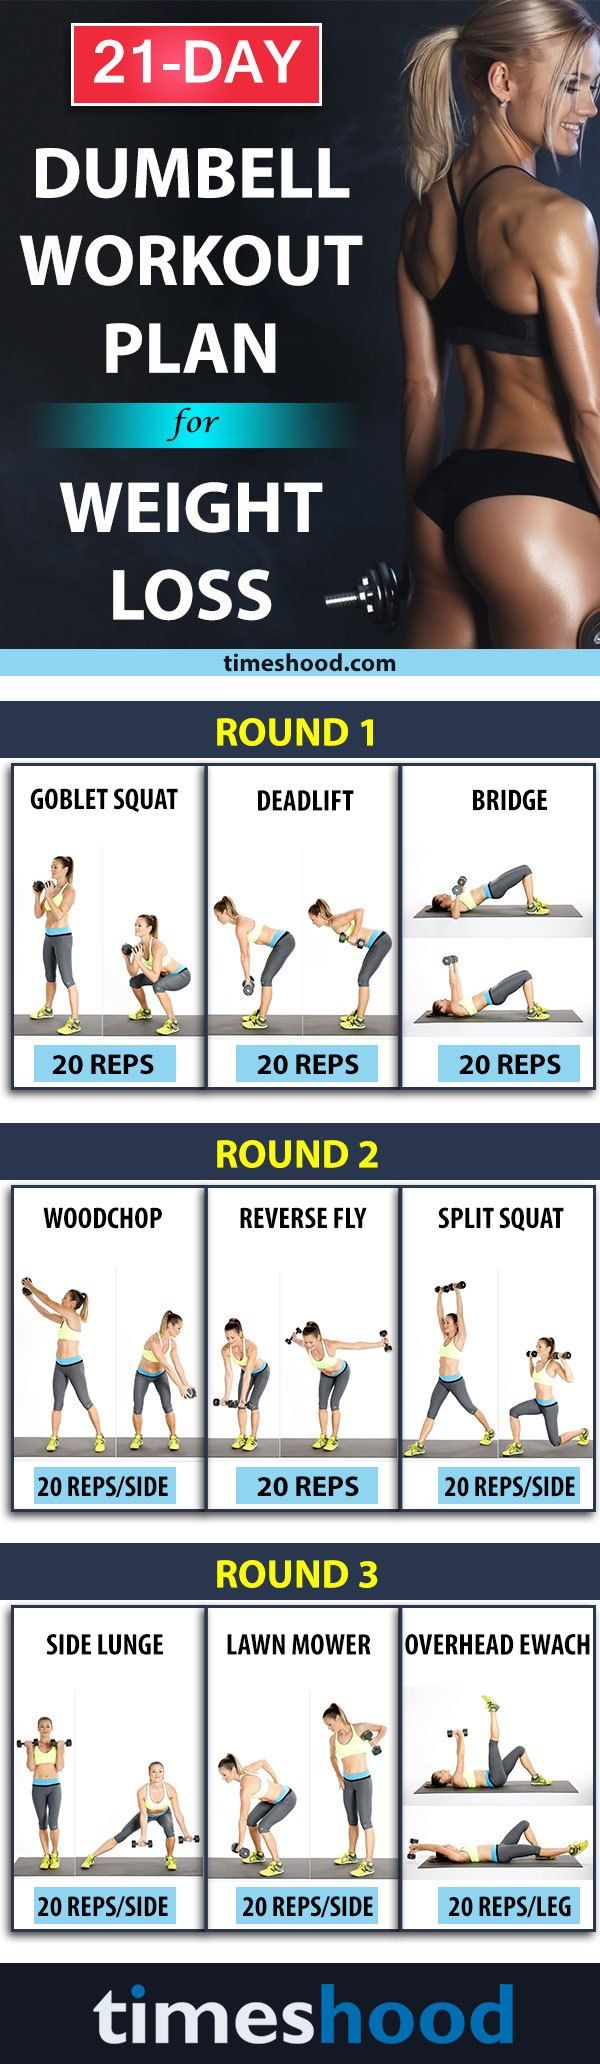 4 day a week weight loss workout image 8